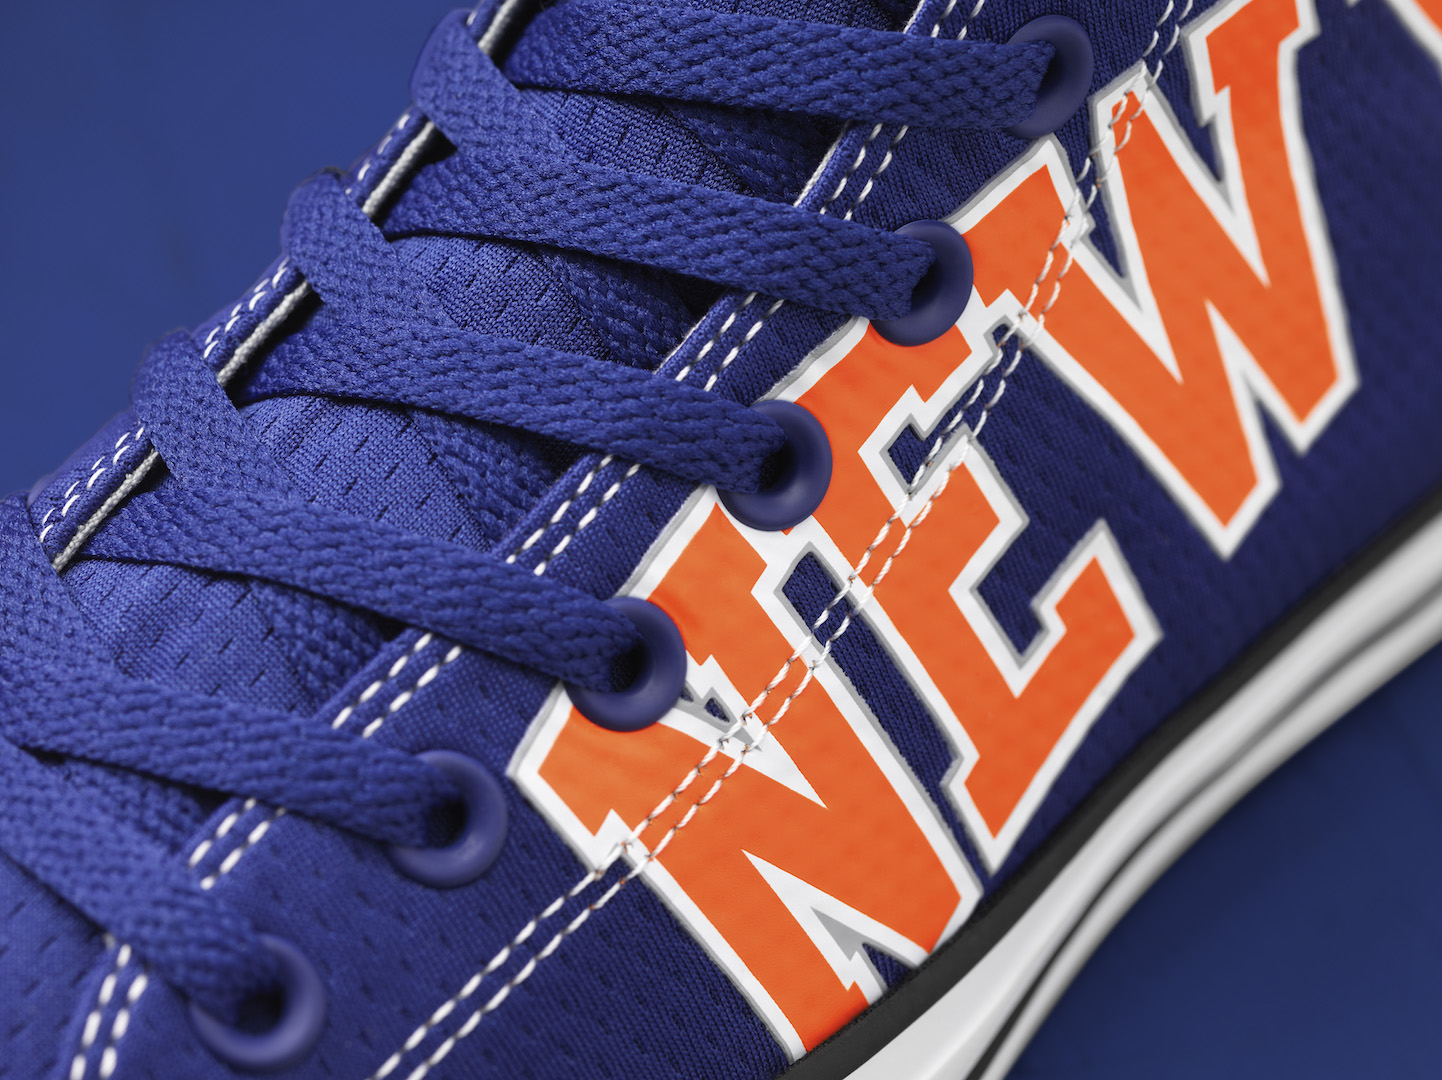 HO17_NBA_CTAS_SE_FRANCHISE_NY_KNICKS_159423C_DETAIL_4_w2_RGB - Copy